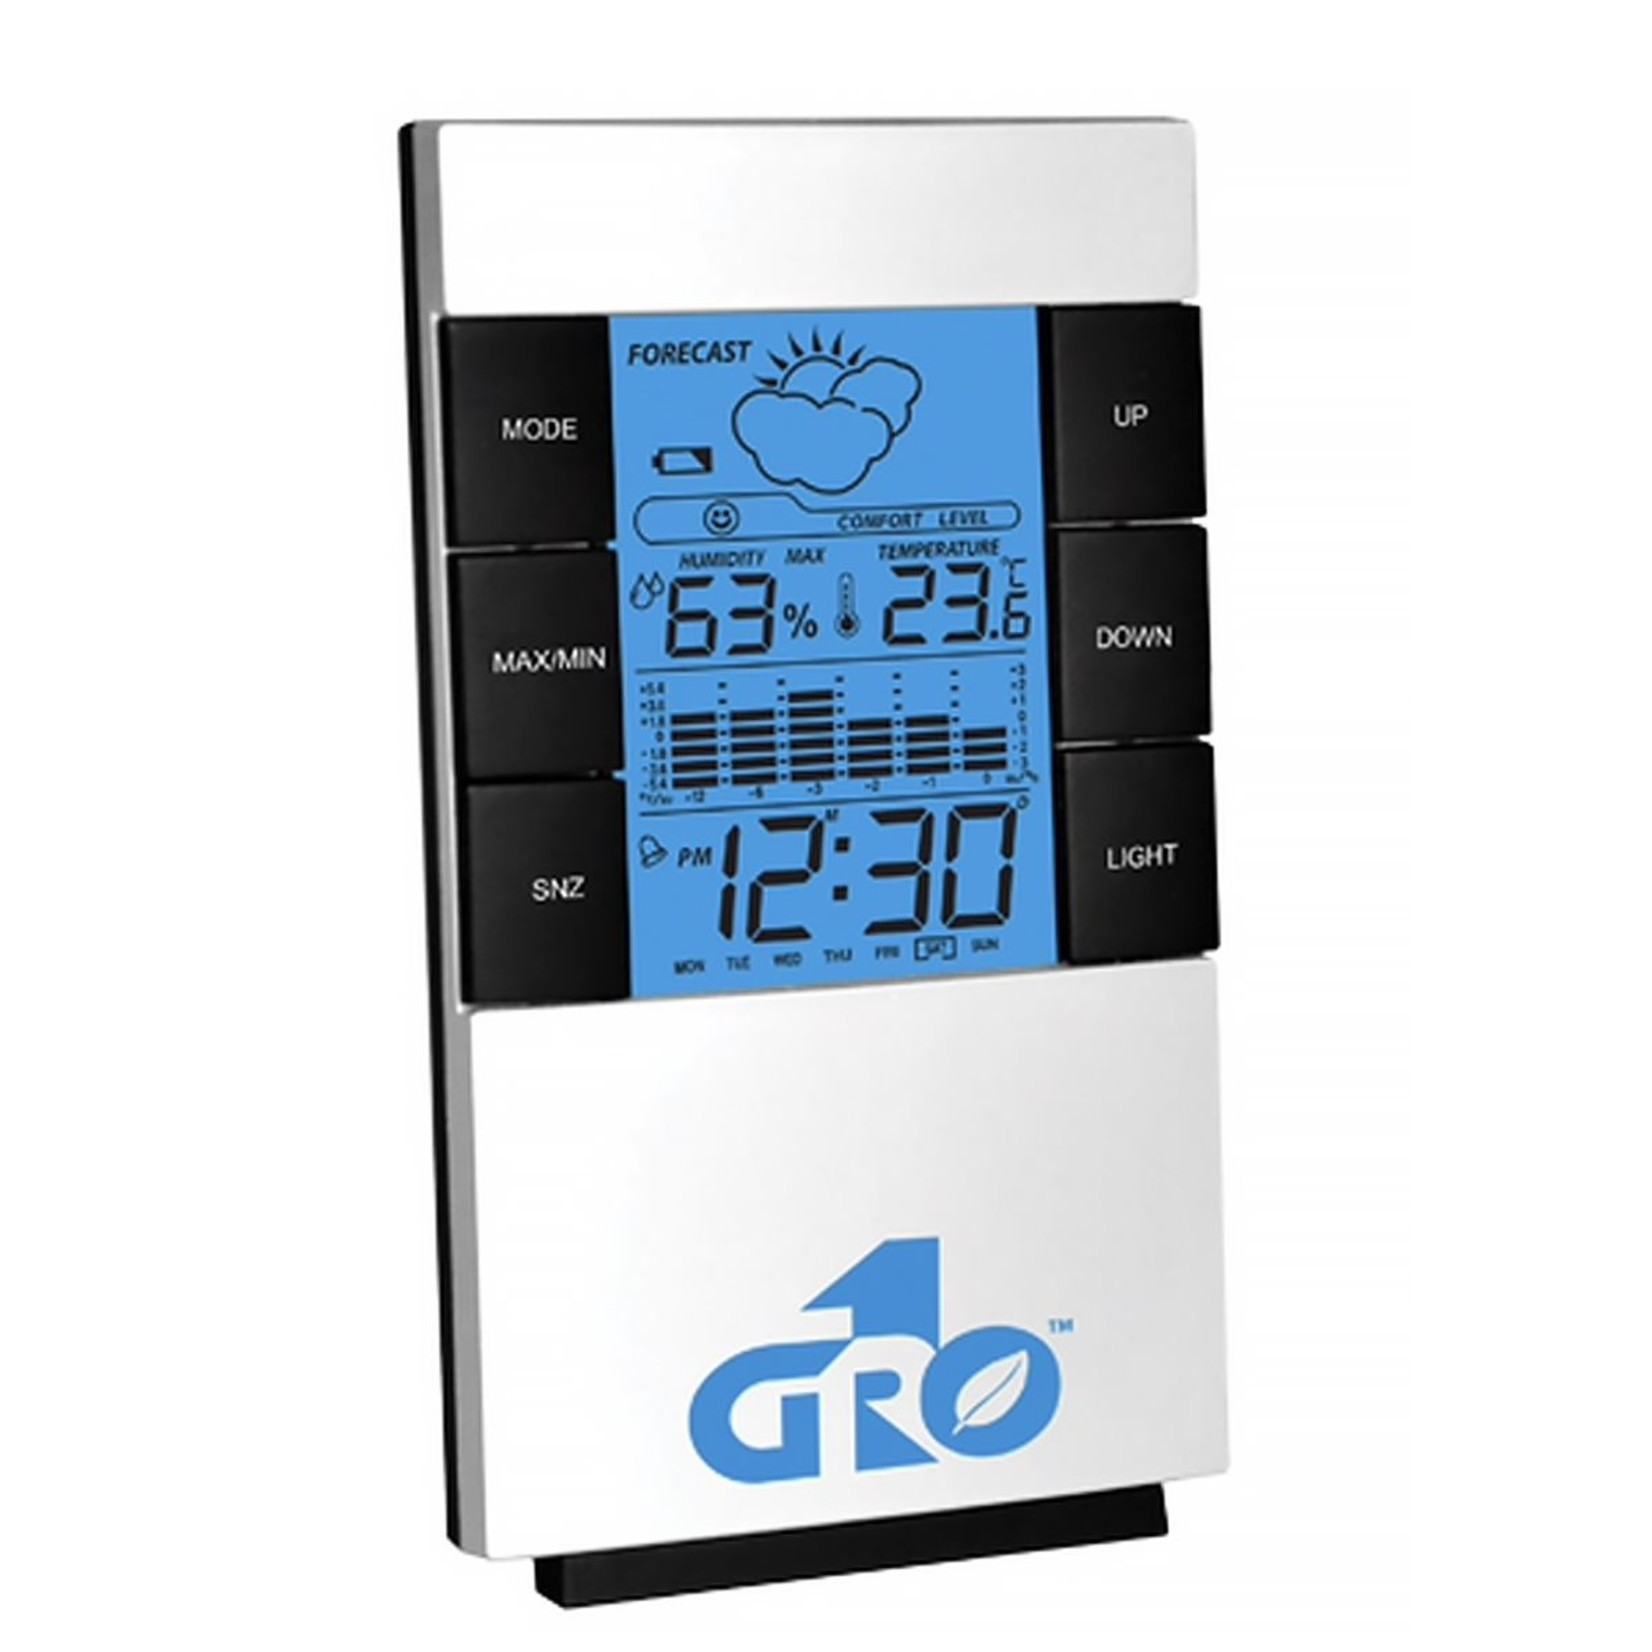 Gro1 Gro1 Digital Weather Station Non-Wireless